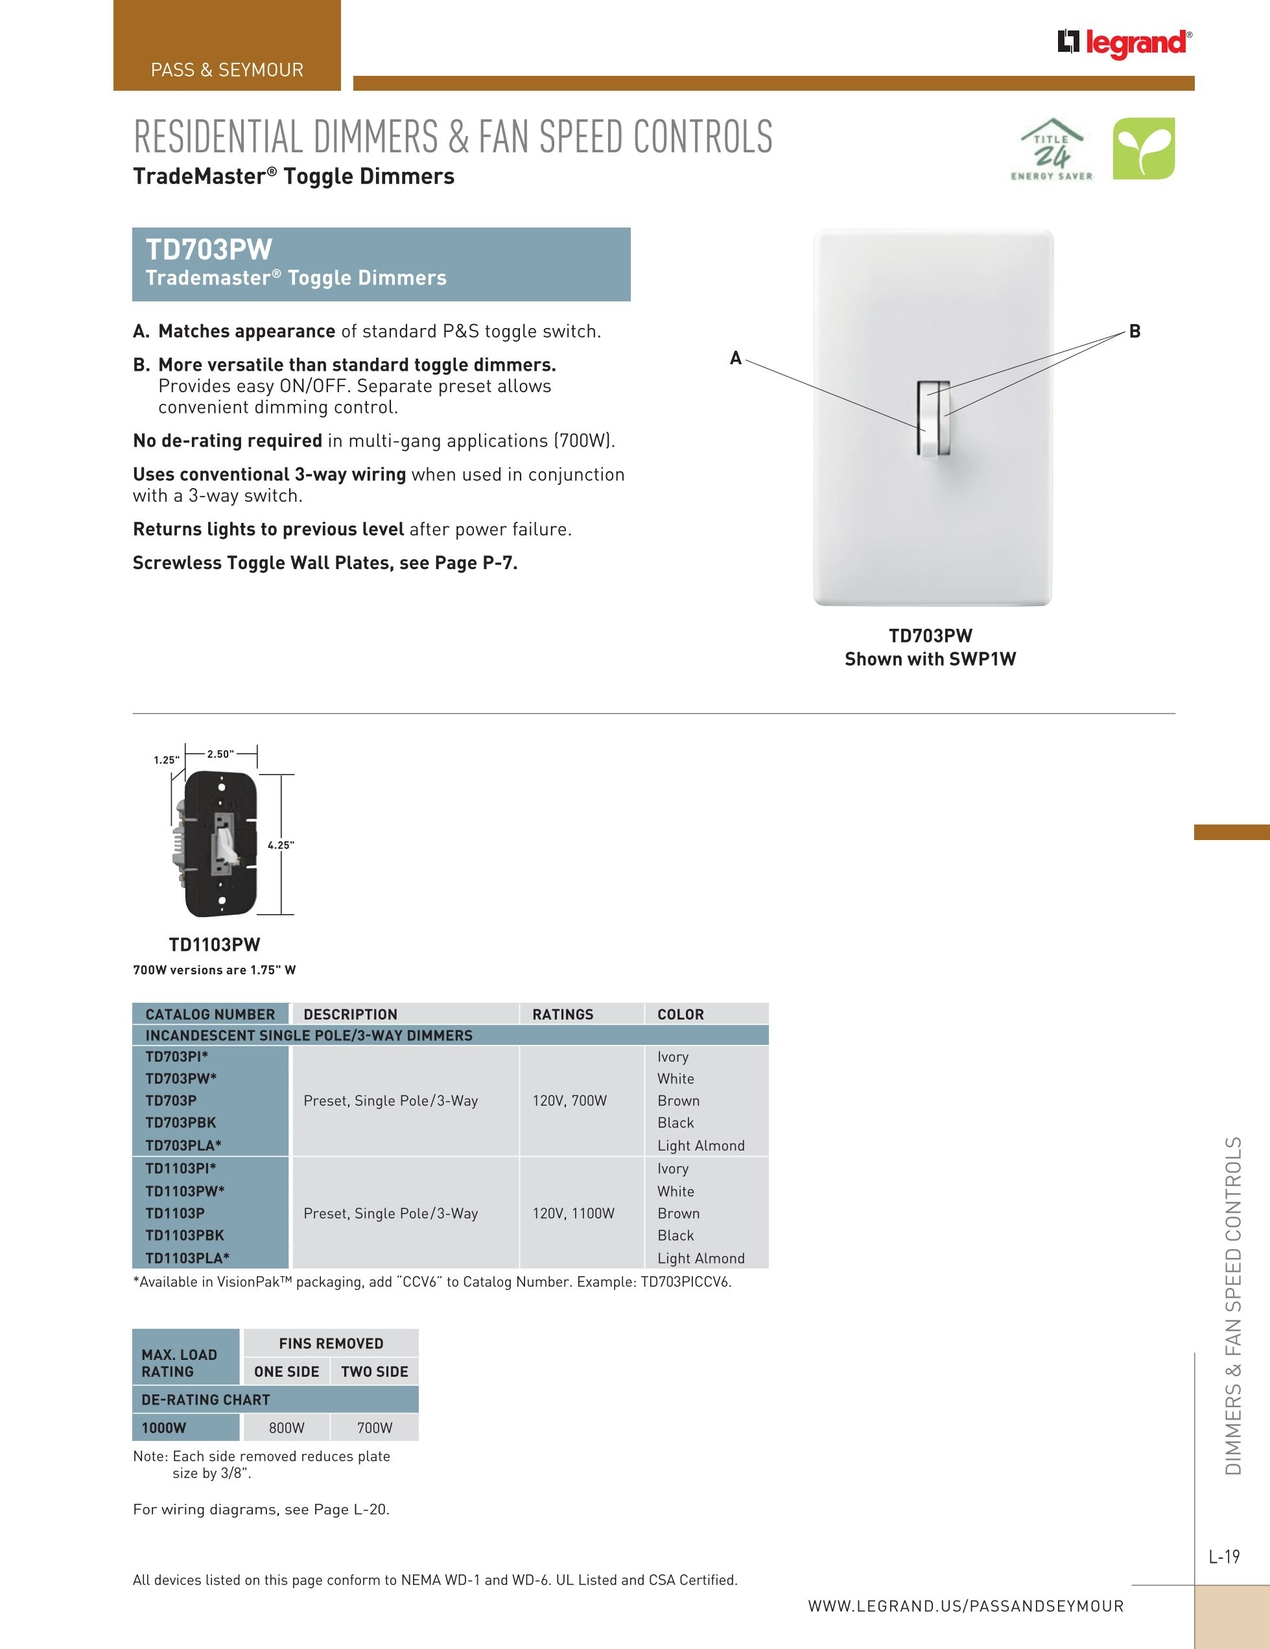 Pass & Seymour - Electrical Wiring Devices - 2013-2014 - Pass & Seymour Switches Wiring Diagram